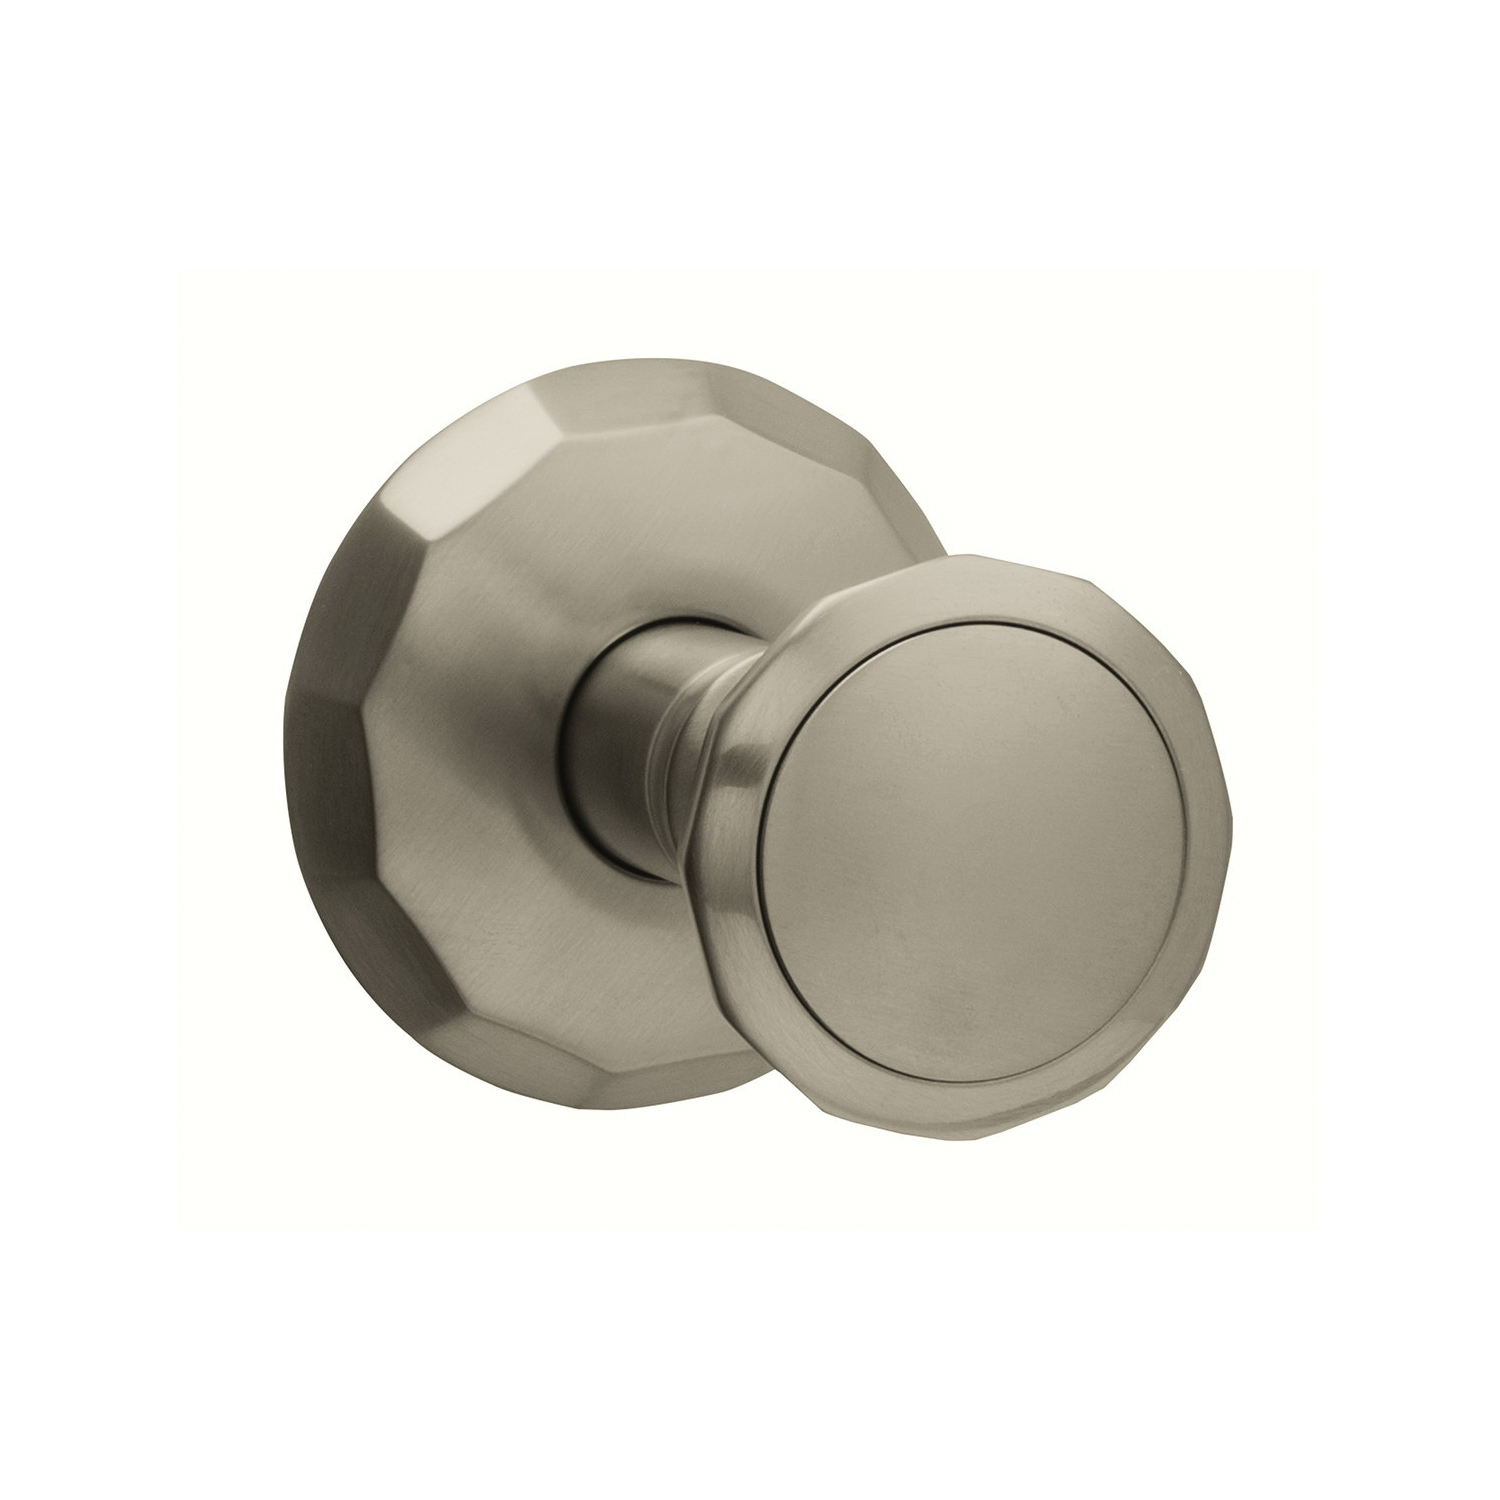 GROHE 19269EN0 Kensington® Volume Control Trim, StarLight® Brushed Nickel